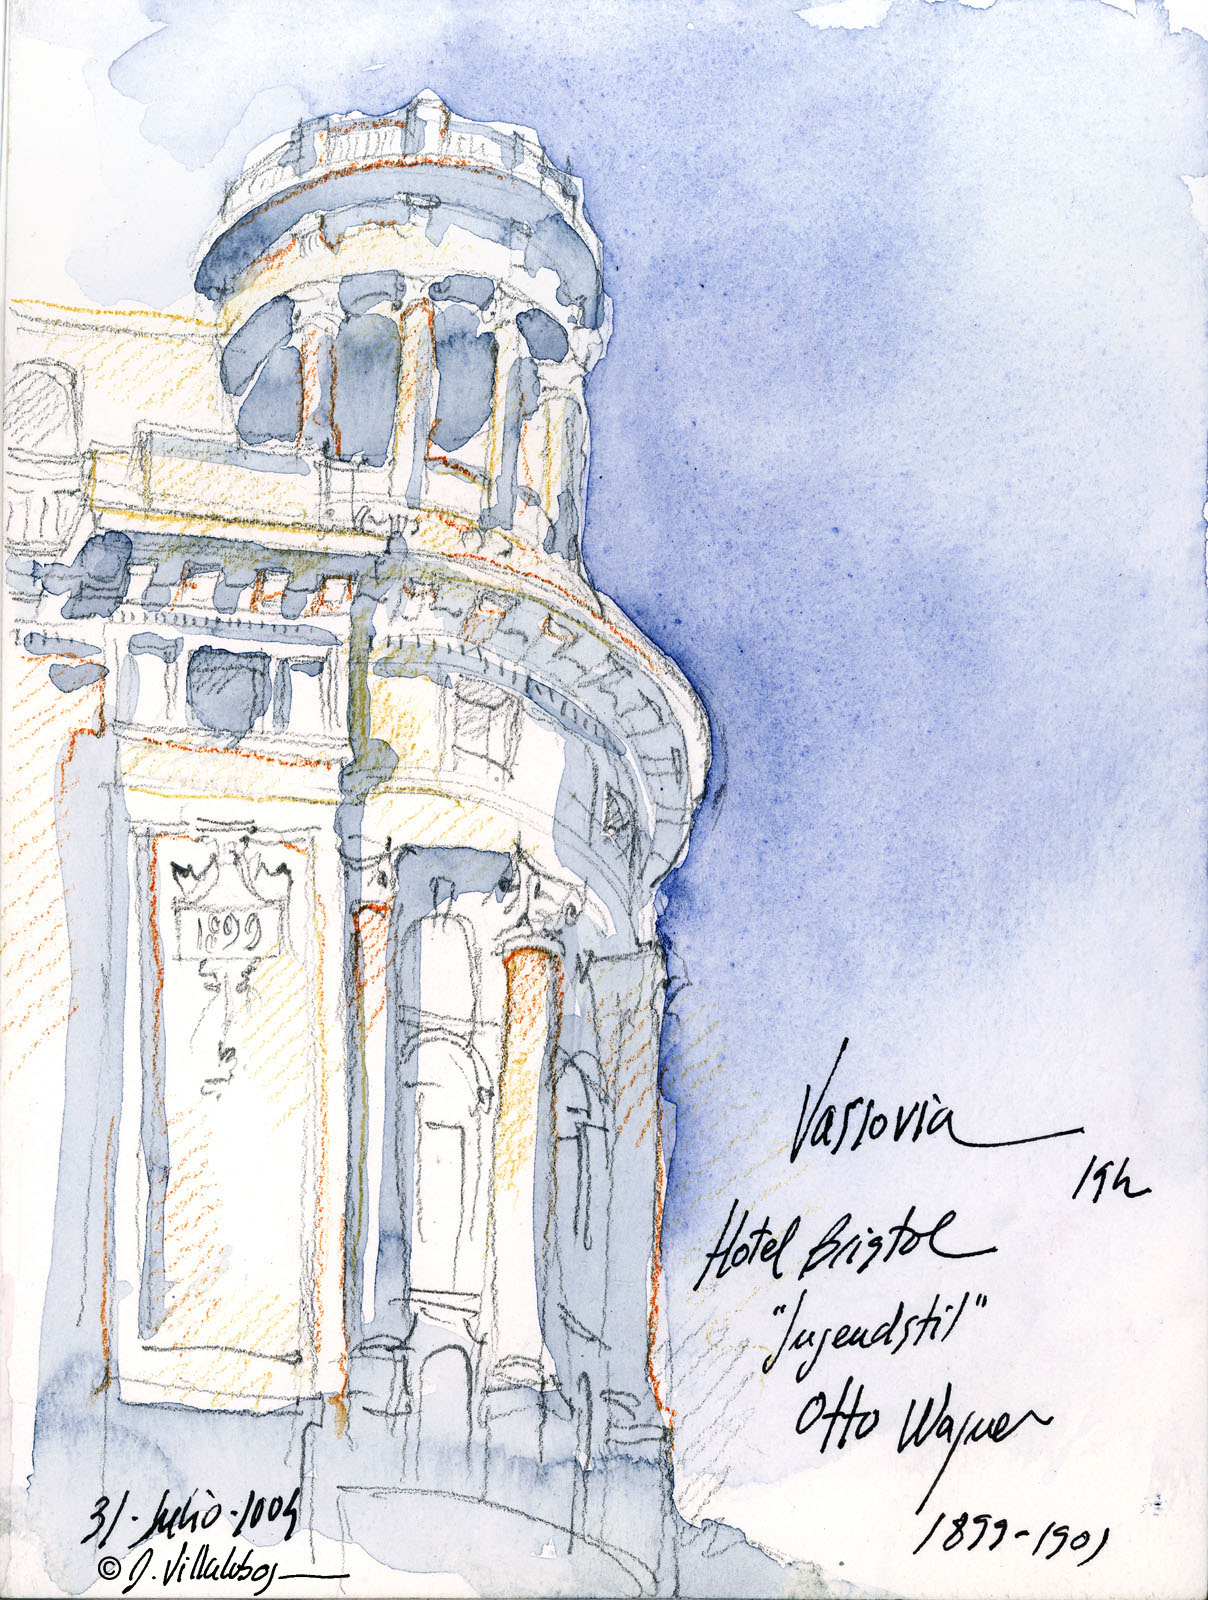 danielvillalobos-architecture-sketchbook-sketch-poland-7